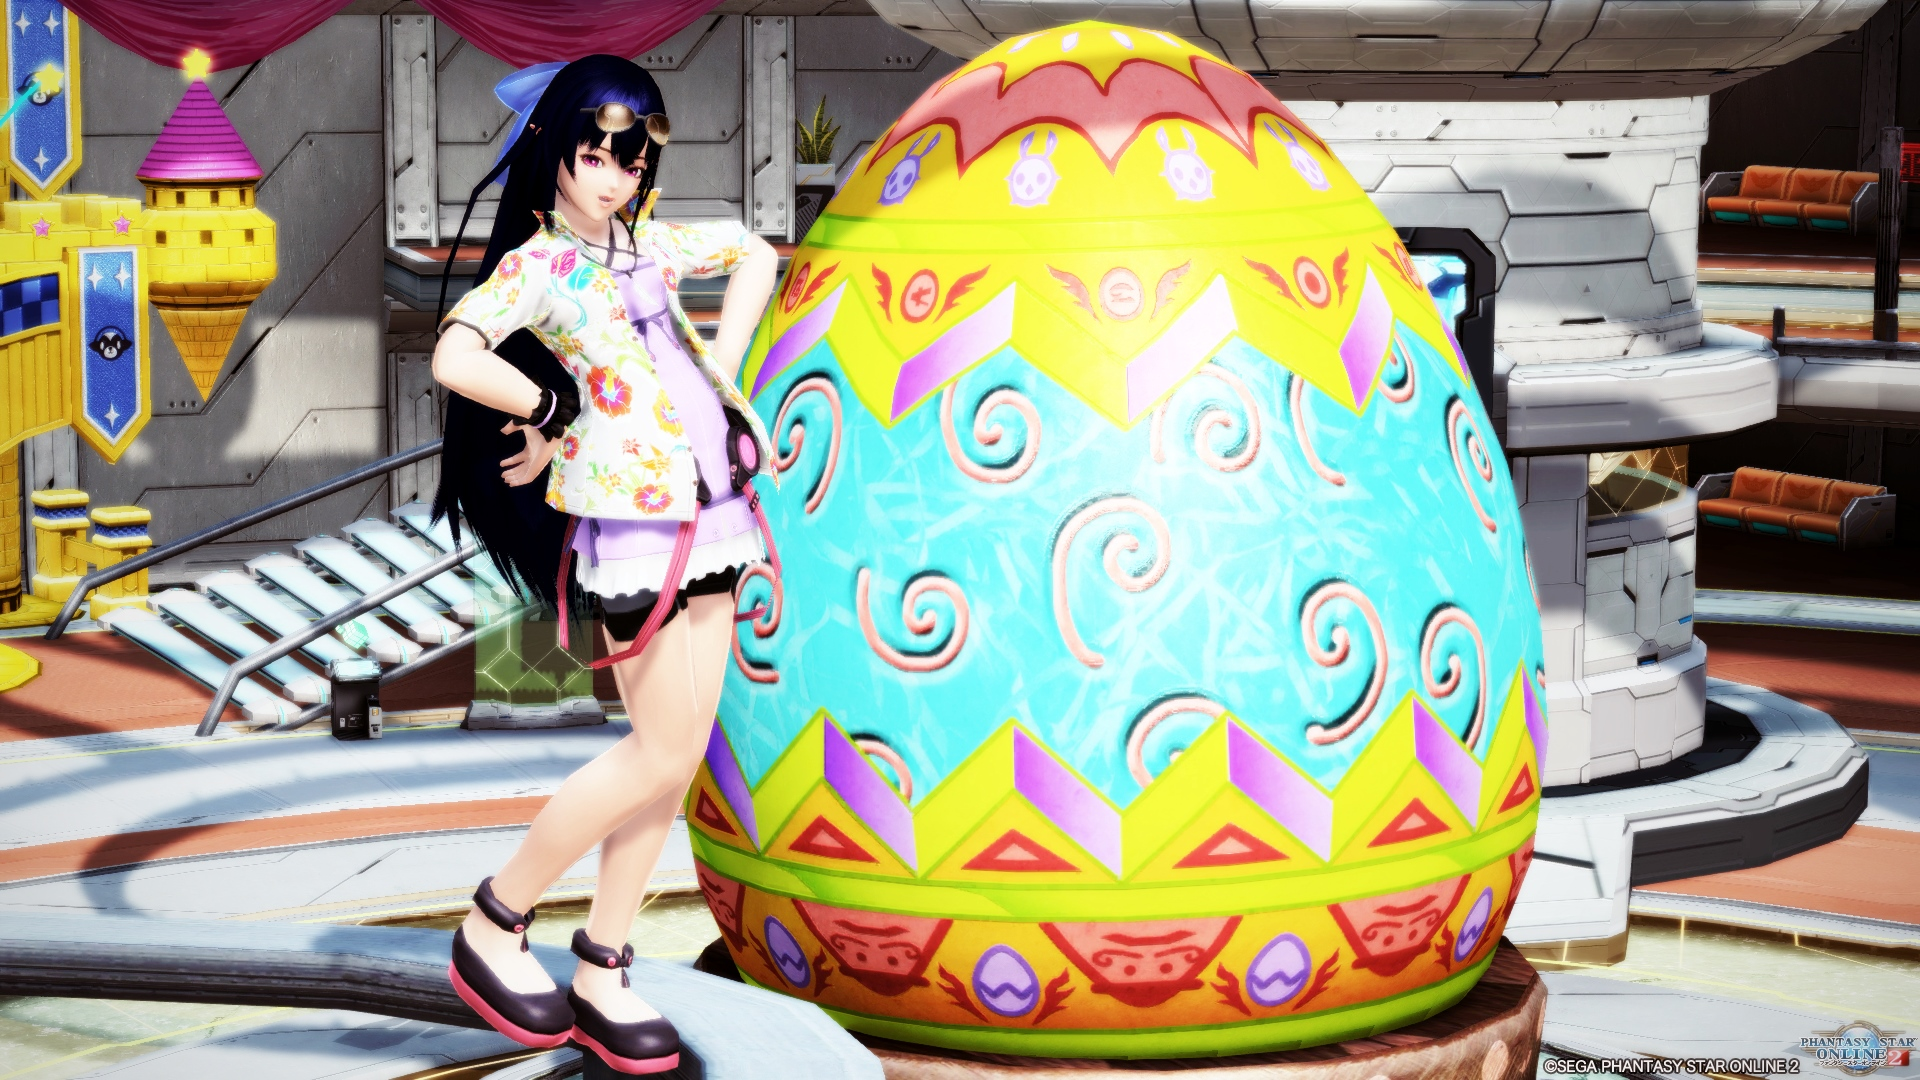 pso2-easter180506_1 - PSO2:雑巾がけ・ドンキコラボ・イースター2018